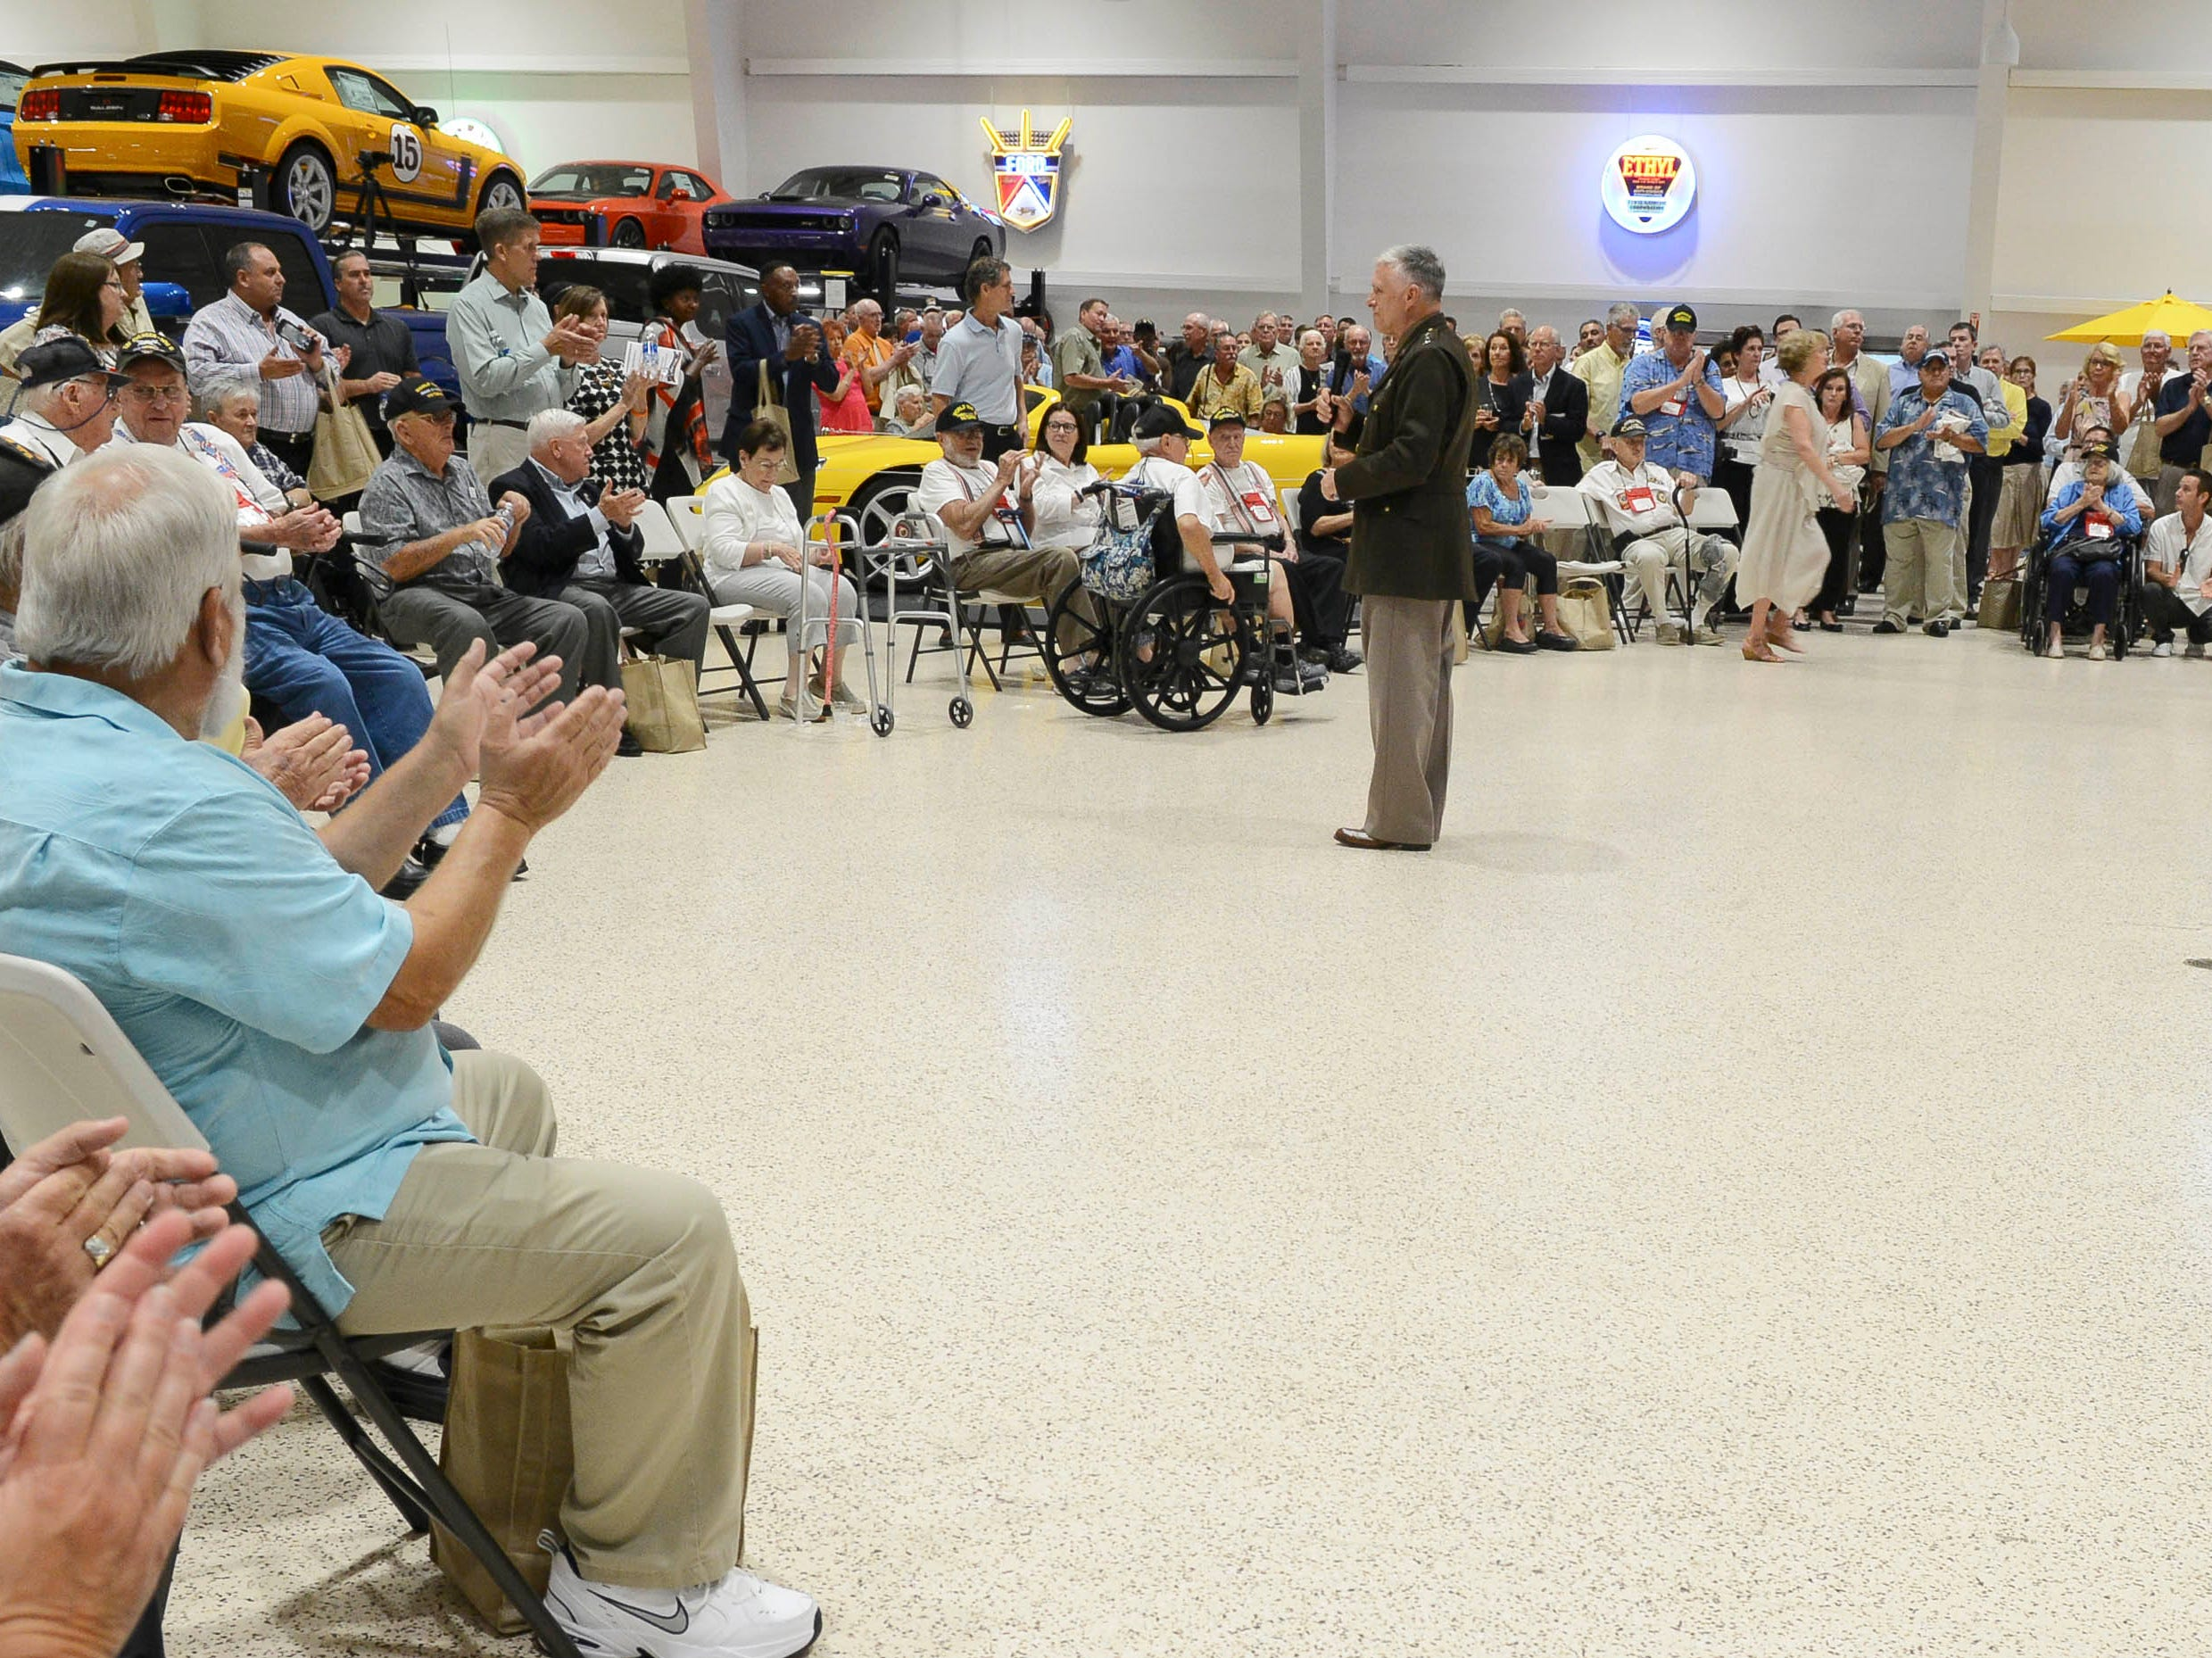 Bill Weiser, president of Space Coast Honor Flight, addresses the during Stars and Stripes fundraiser at American Muscle Car Museum. The event was a fundraiser for Space Coast Honor Flight.